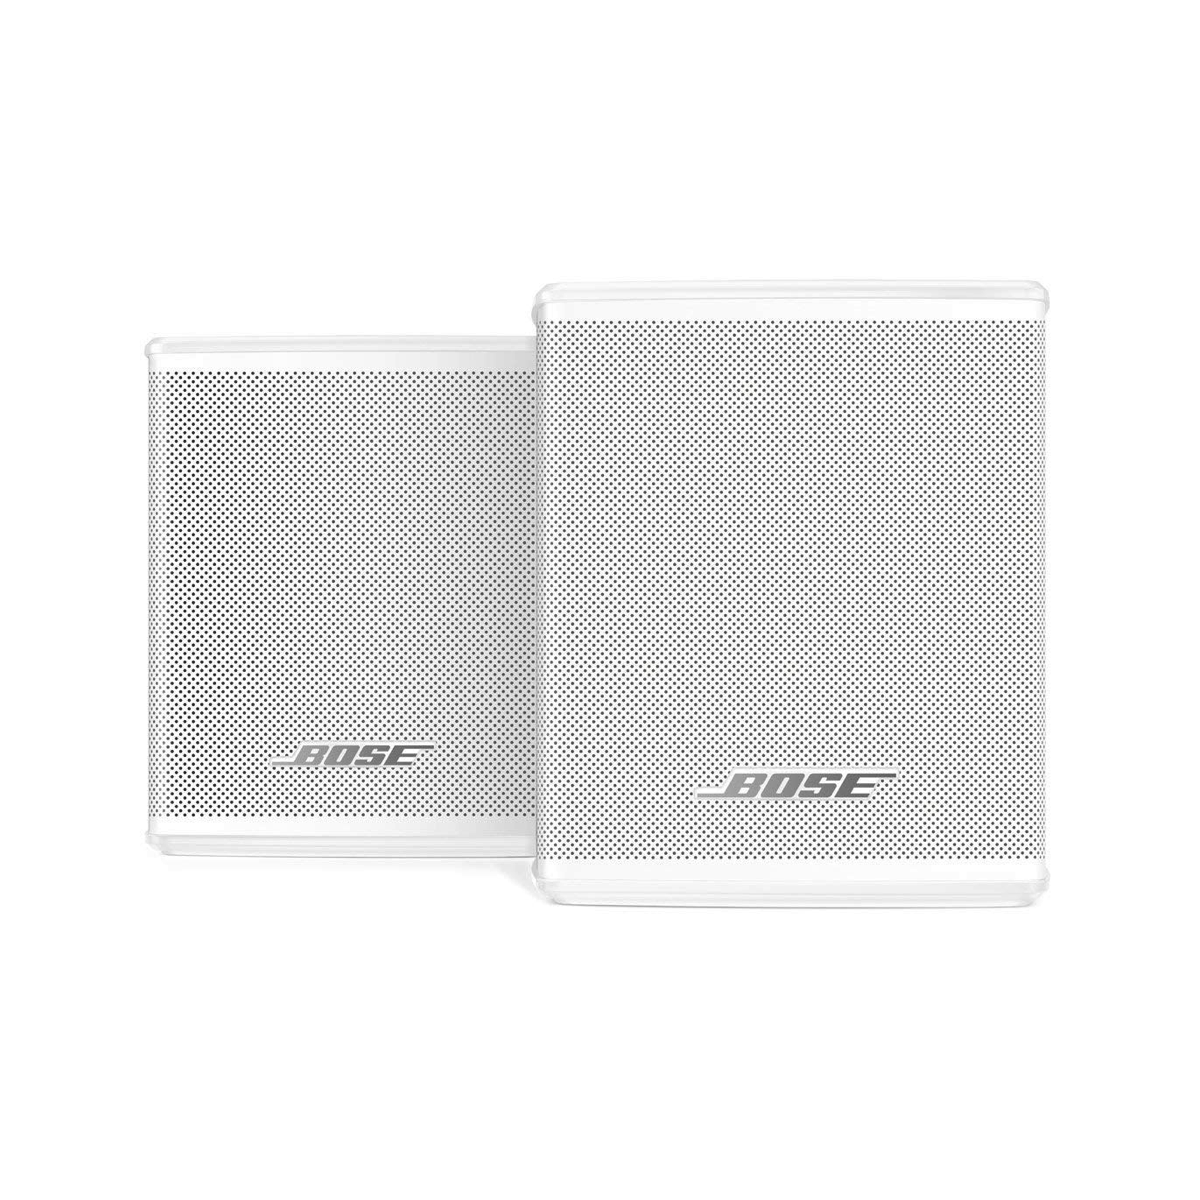 Bose Virtually Invisible 300 - Surround Speakers, Bose, Surround Speaker - AVStore.in